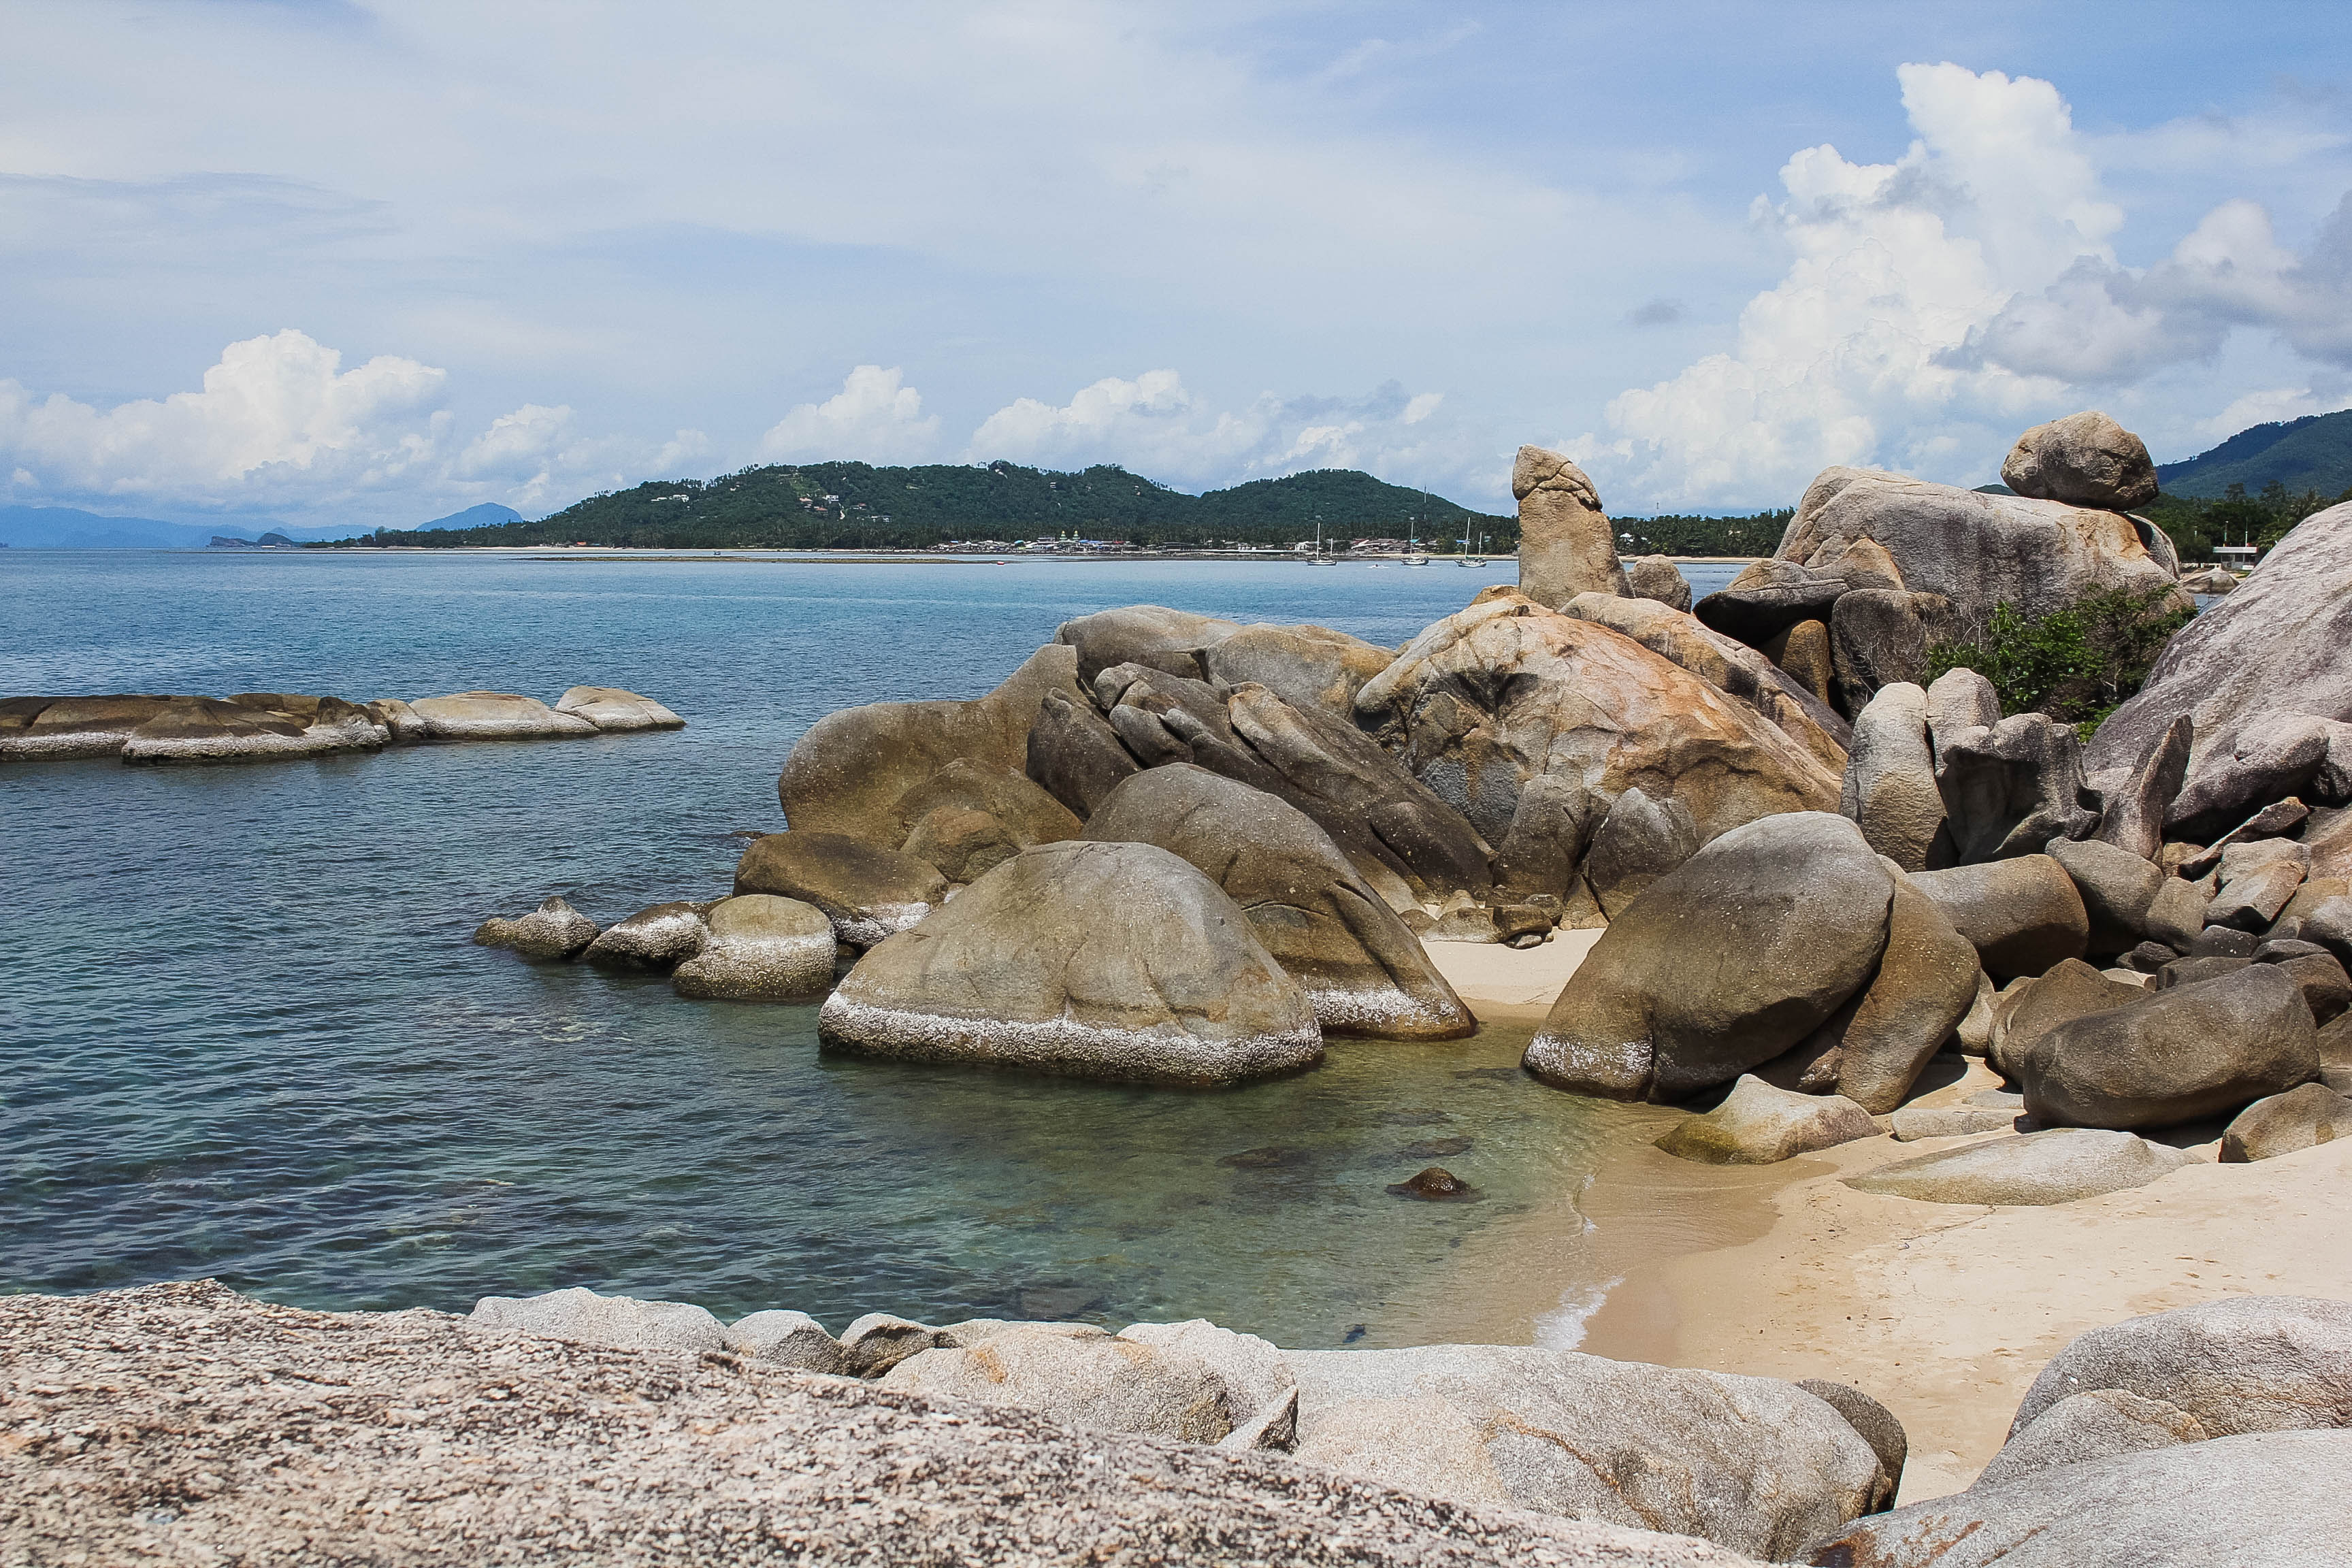 Grandmother & Grandfather Rocks – Koh Samui, Thailand